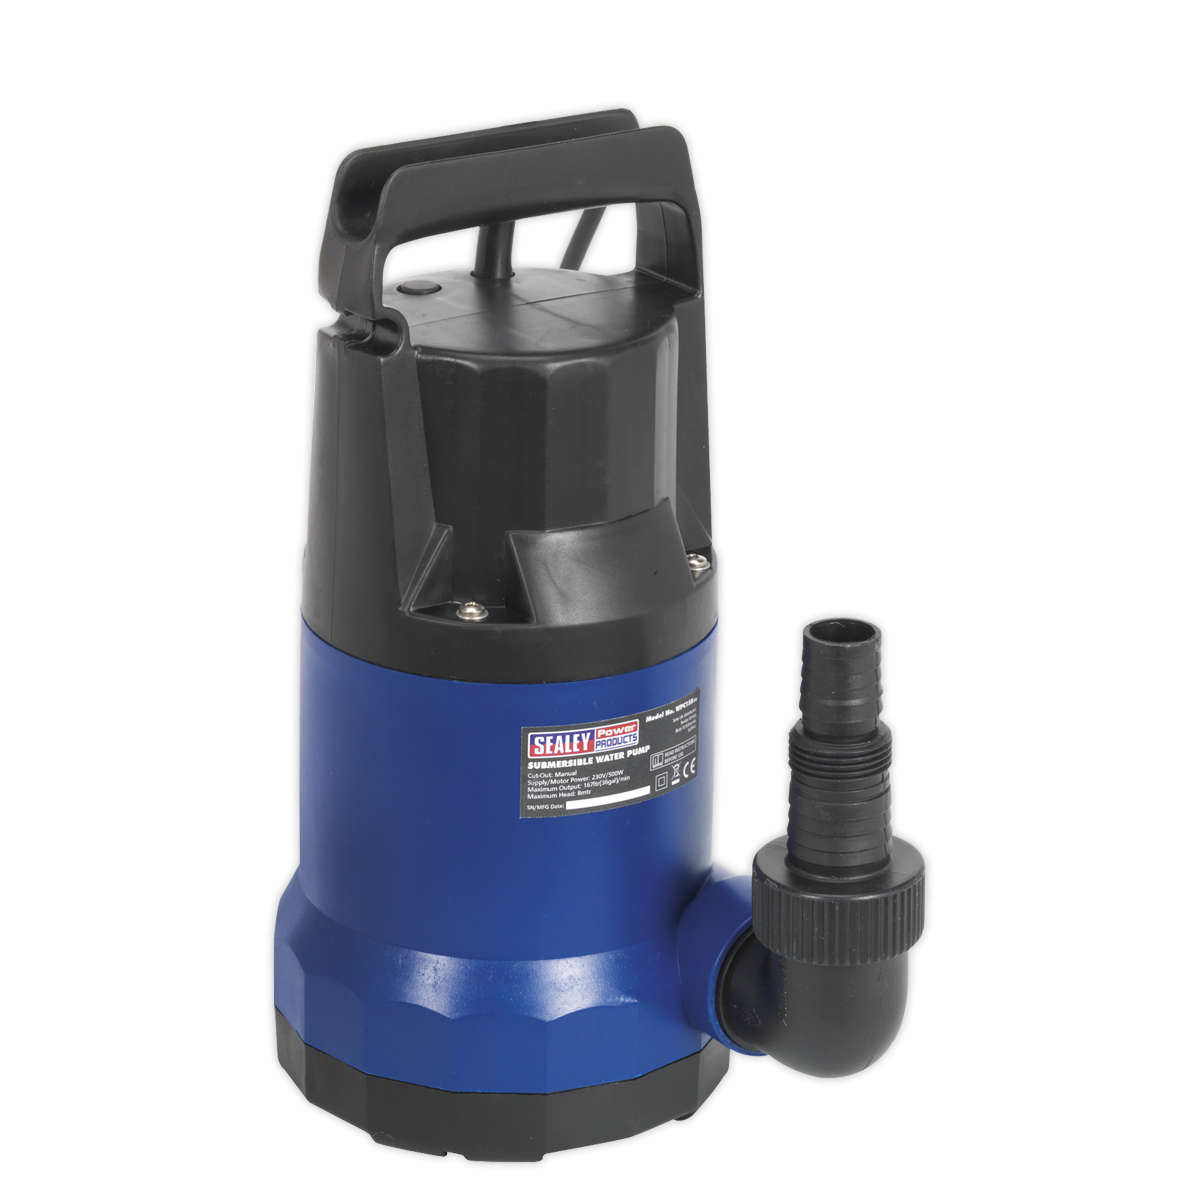 Submersible Water Pump 167ltr min 230V   SEALEY WPC150